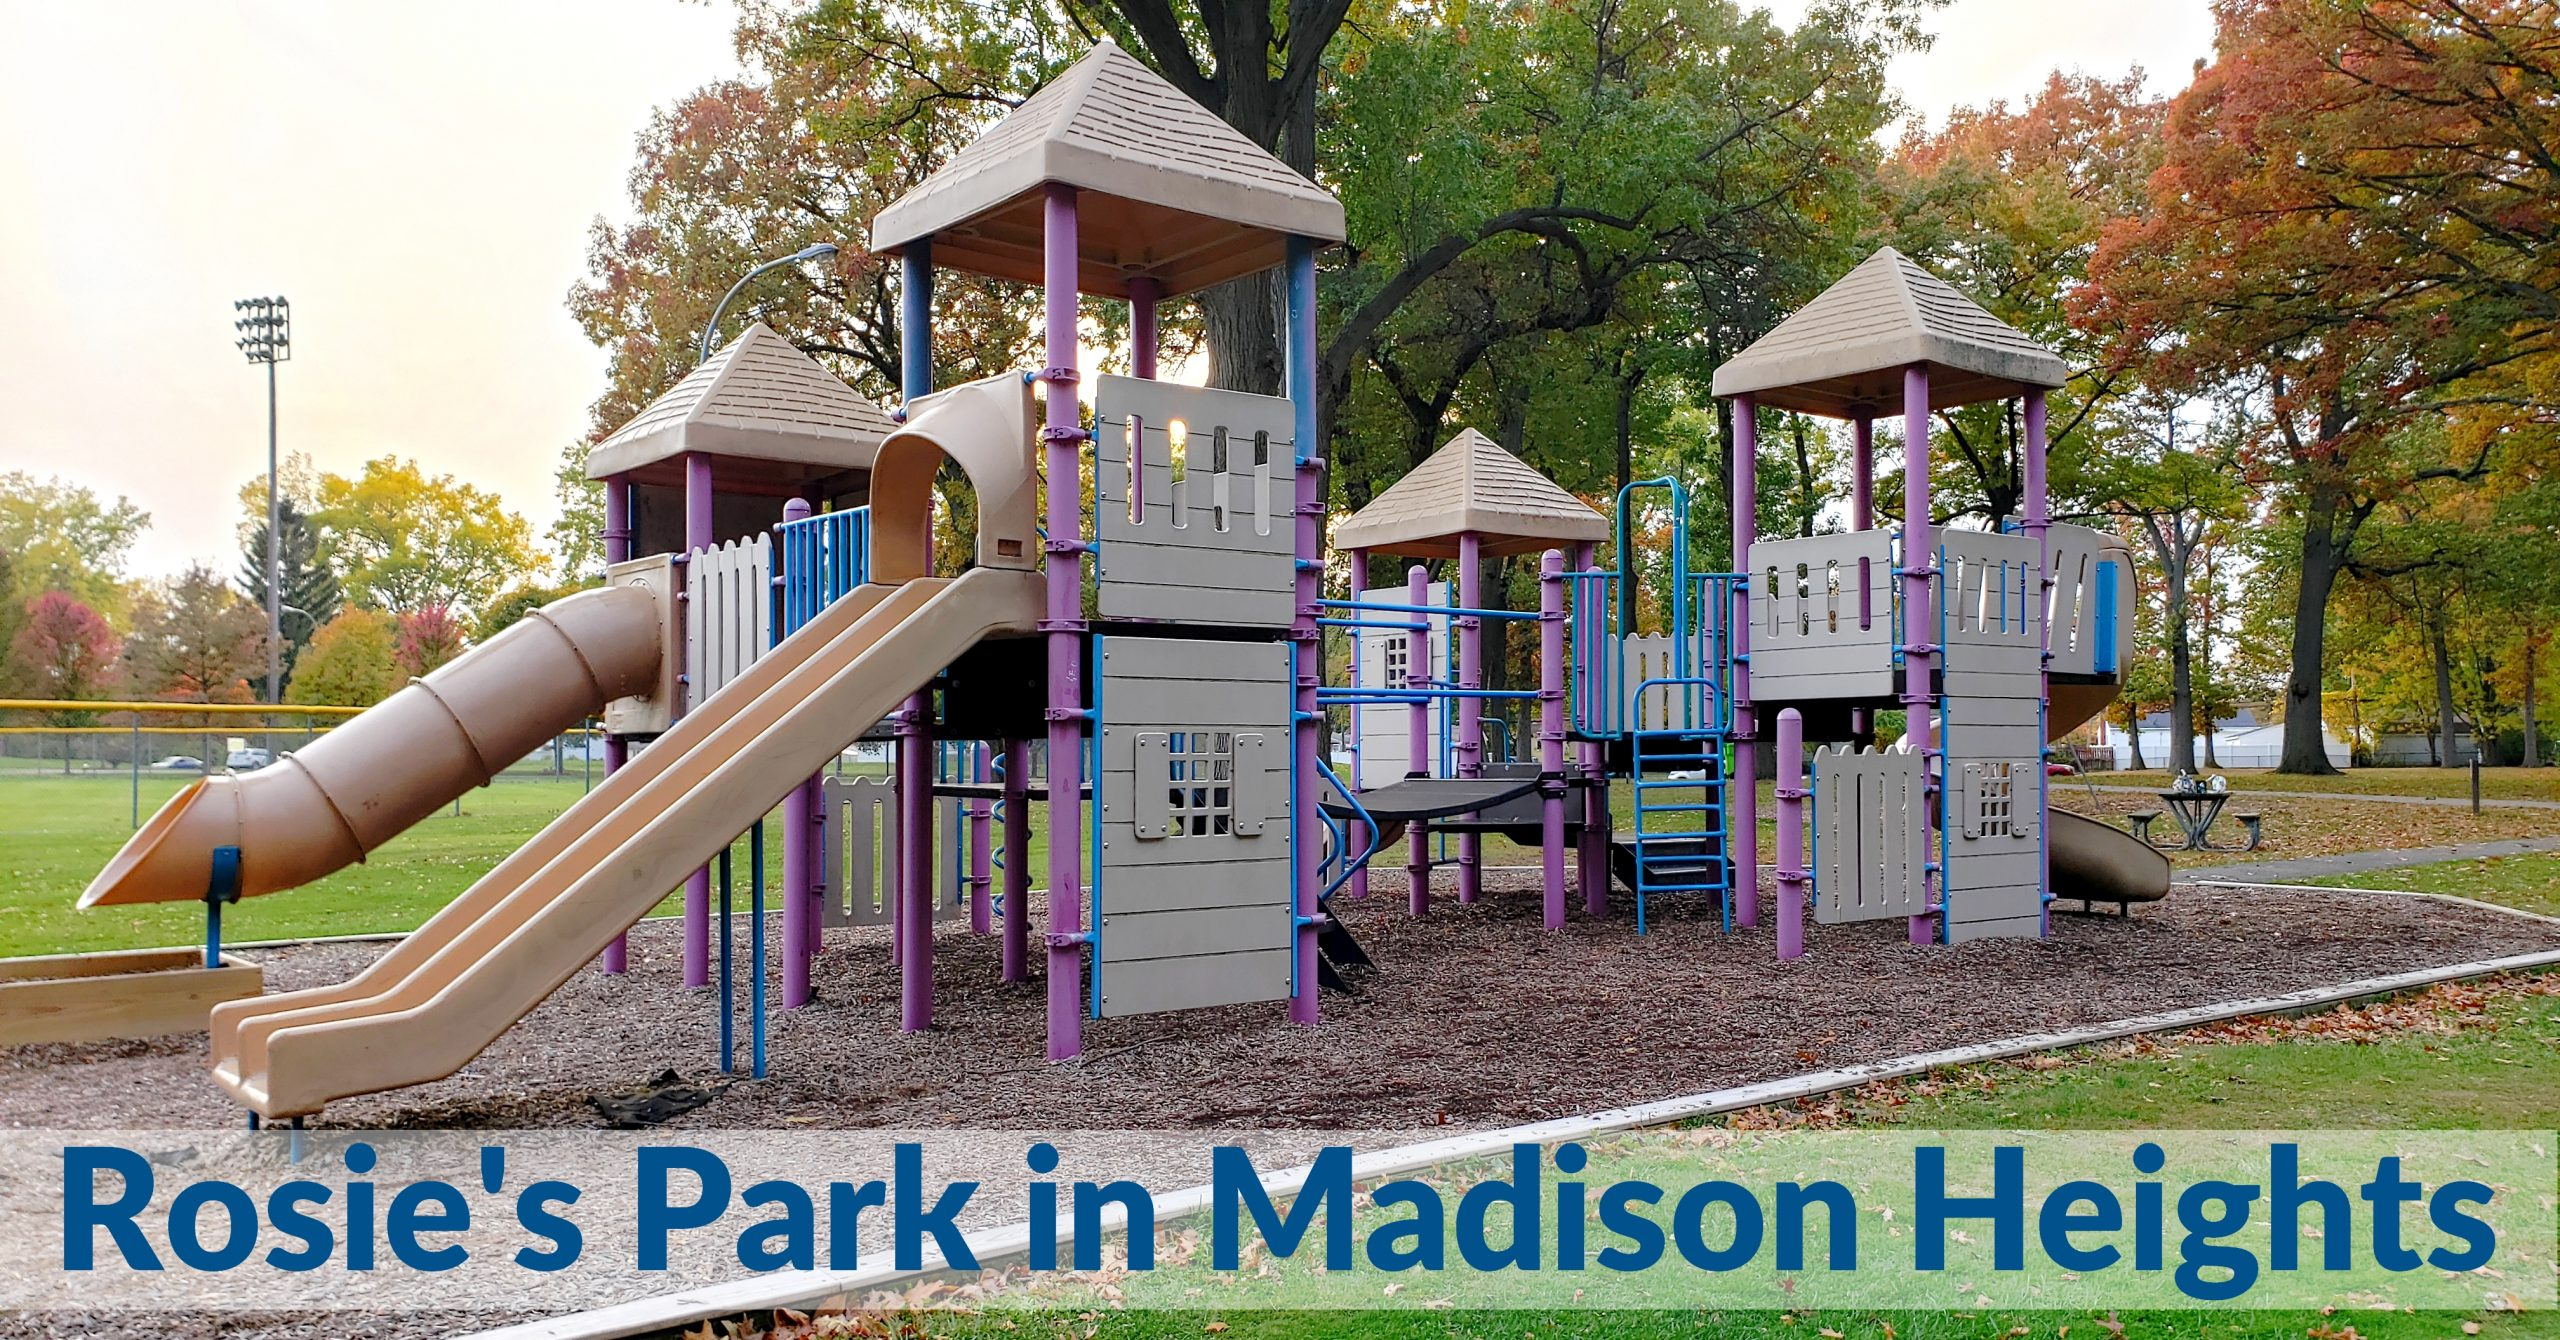 Rosie's Park in Madison Heights